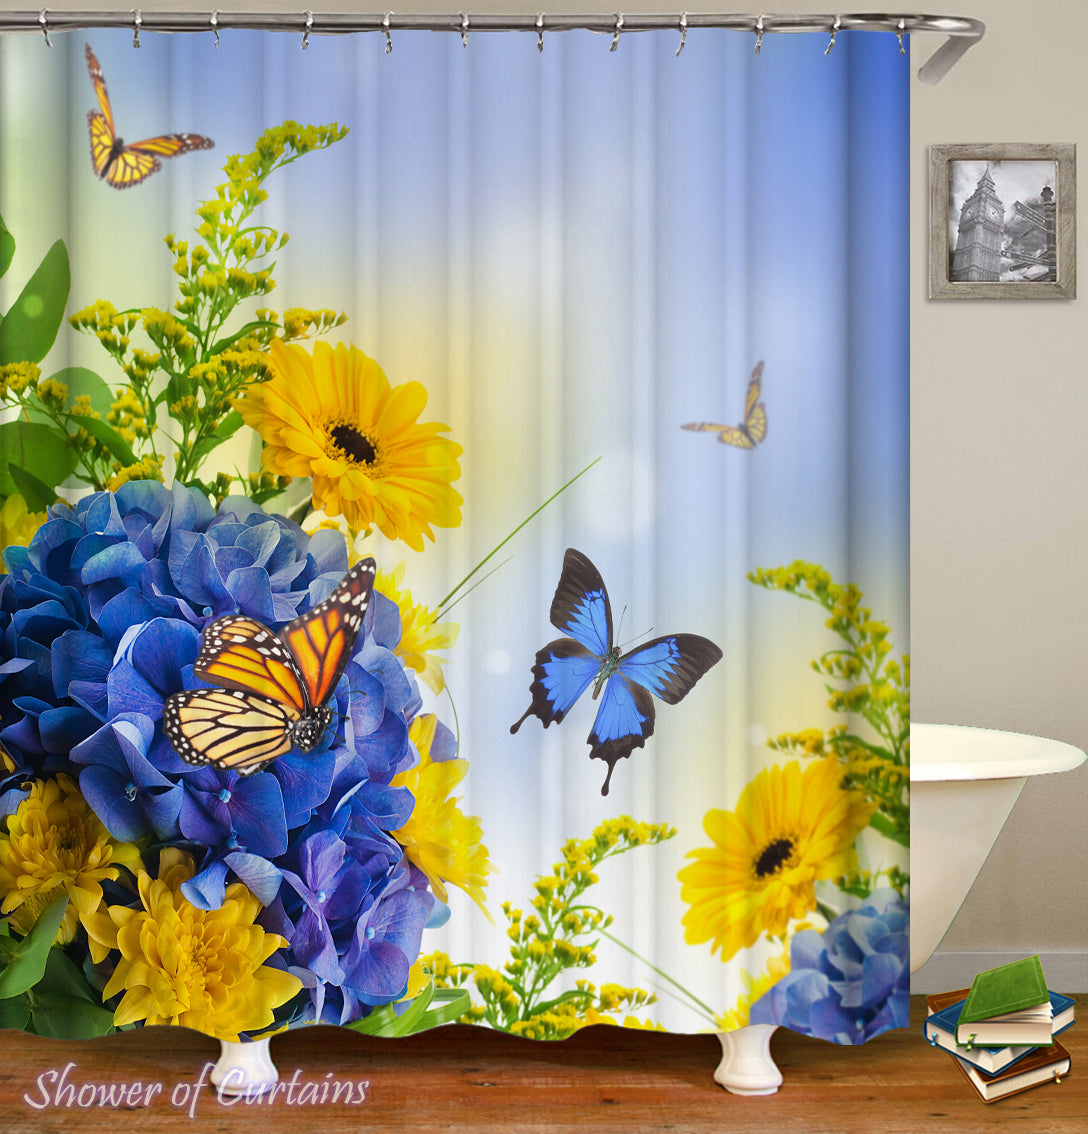 Shower Curtains Blue And Yellow Flowers Ft Butterflies Shower Of Curtains